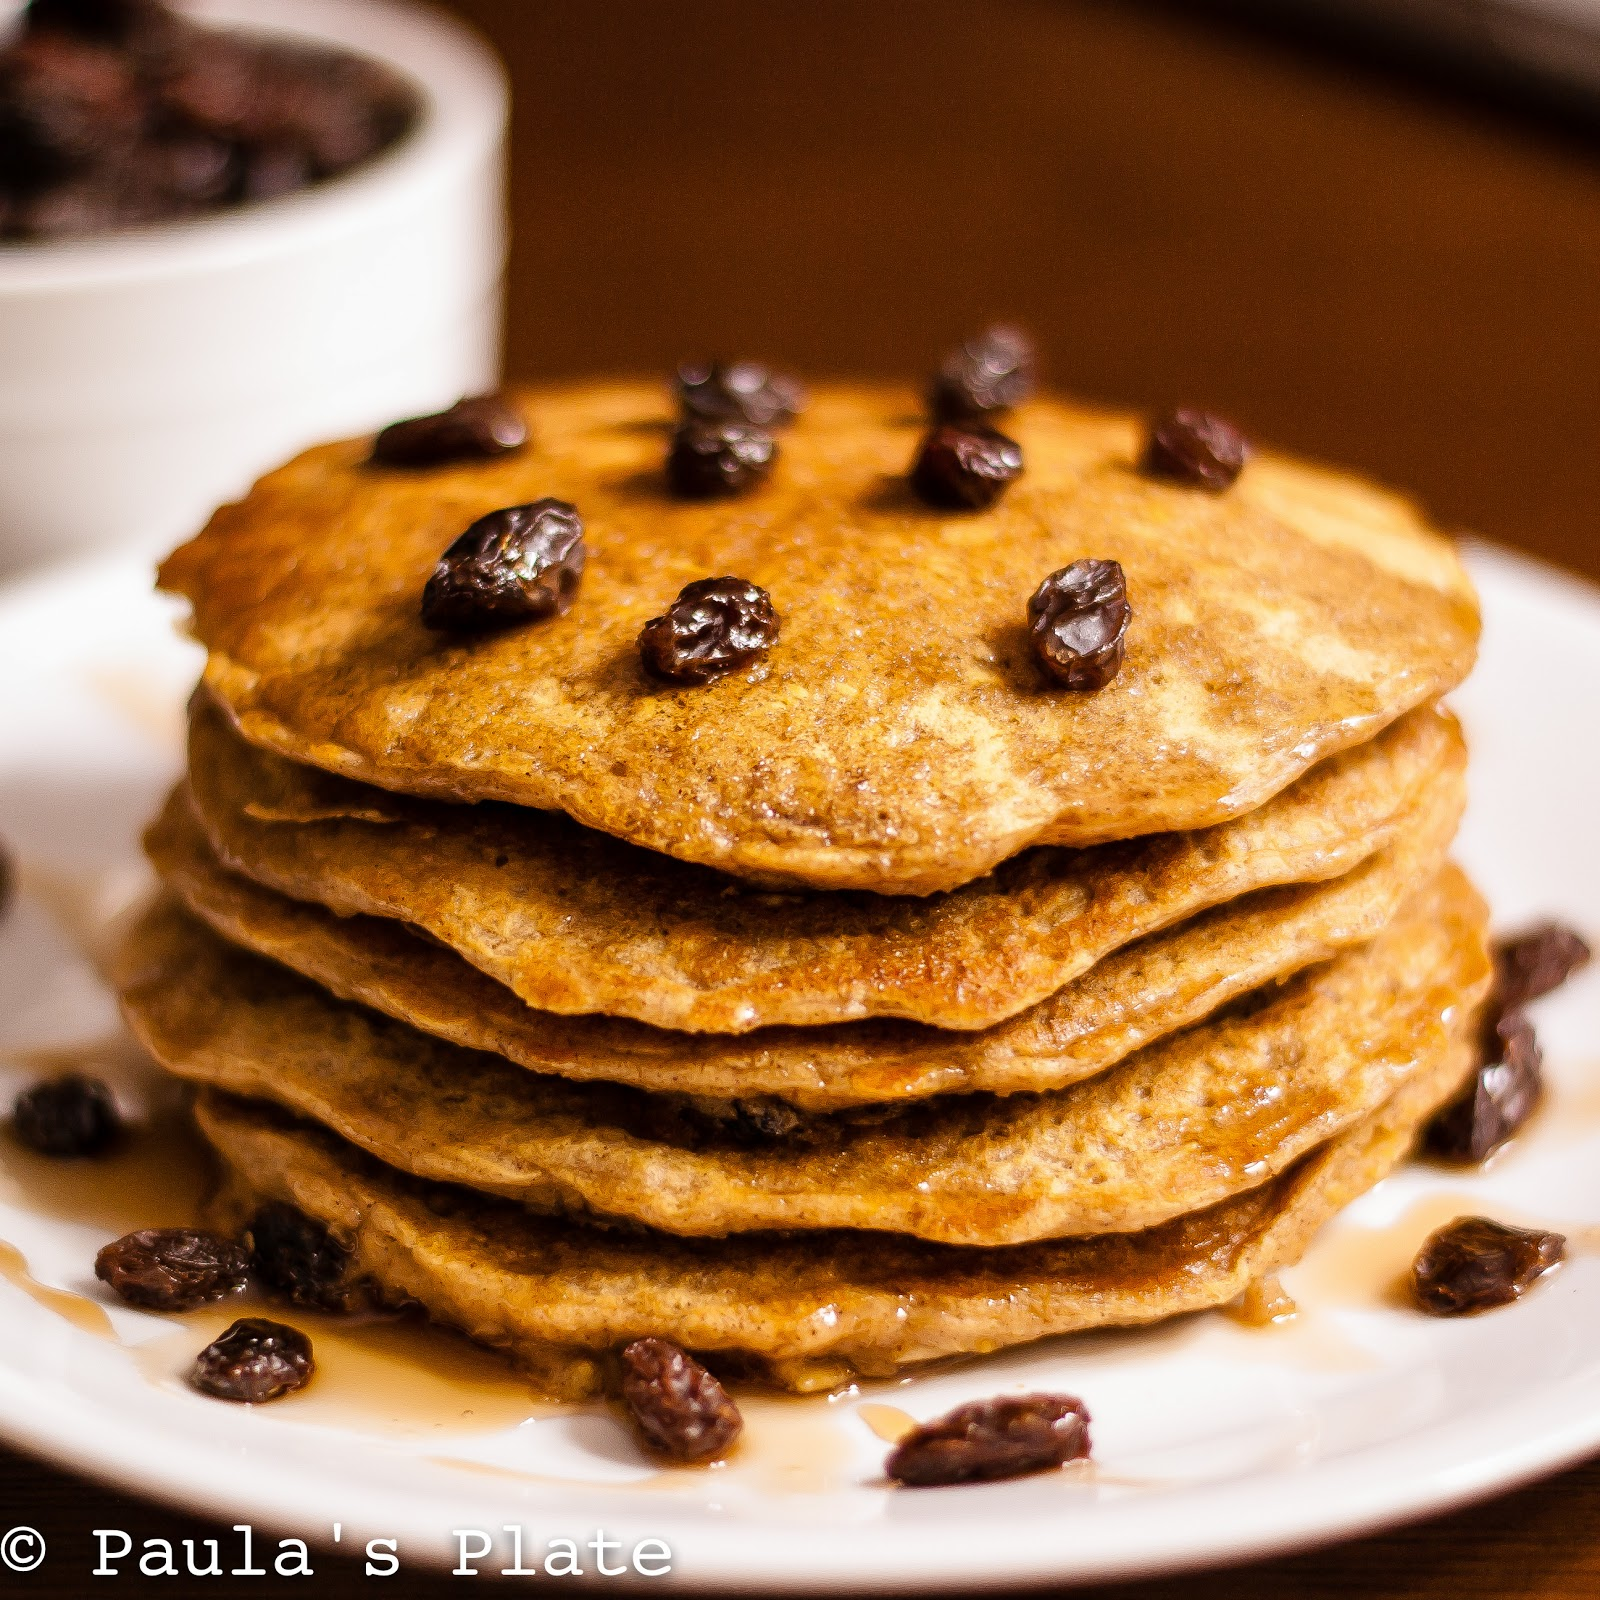 Paula's Plate: Oatmeal Raisin Cookie Pancakes